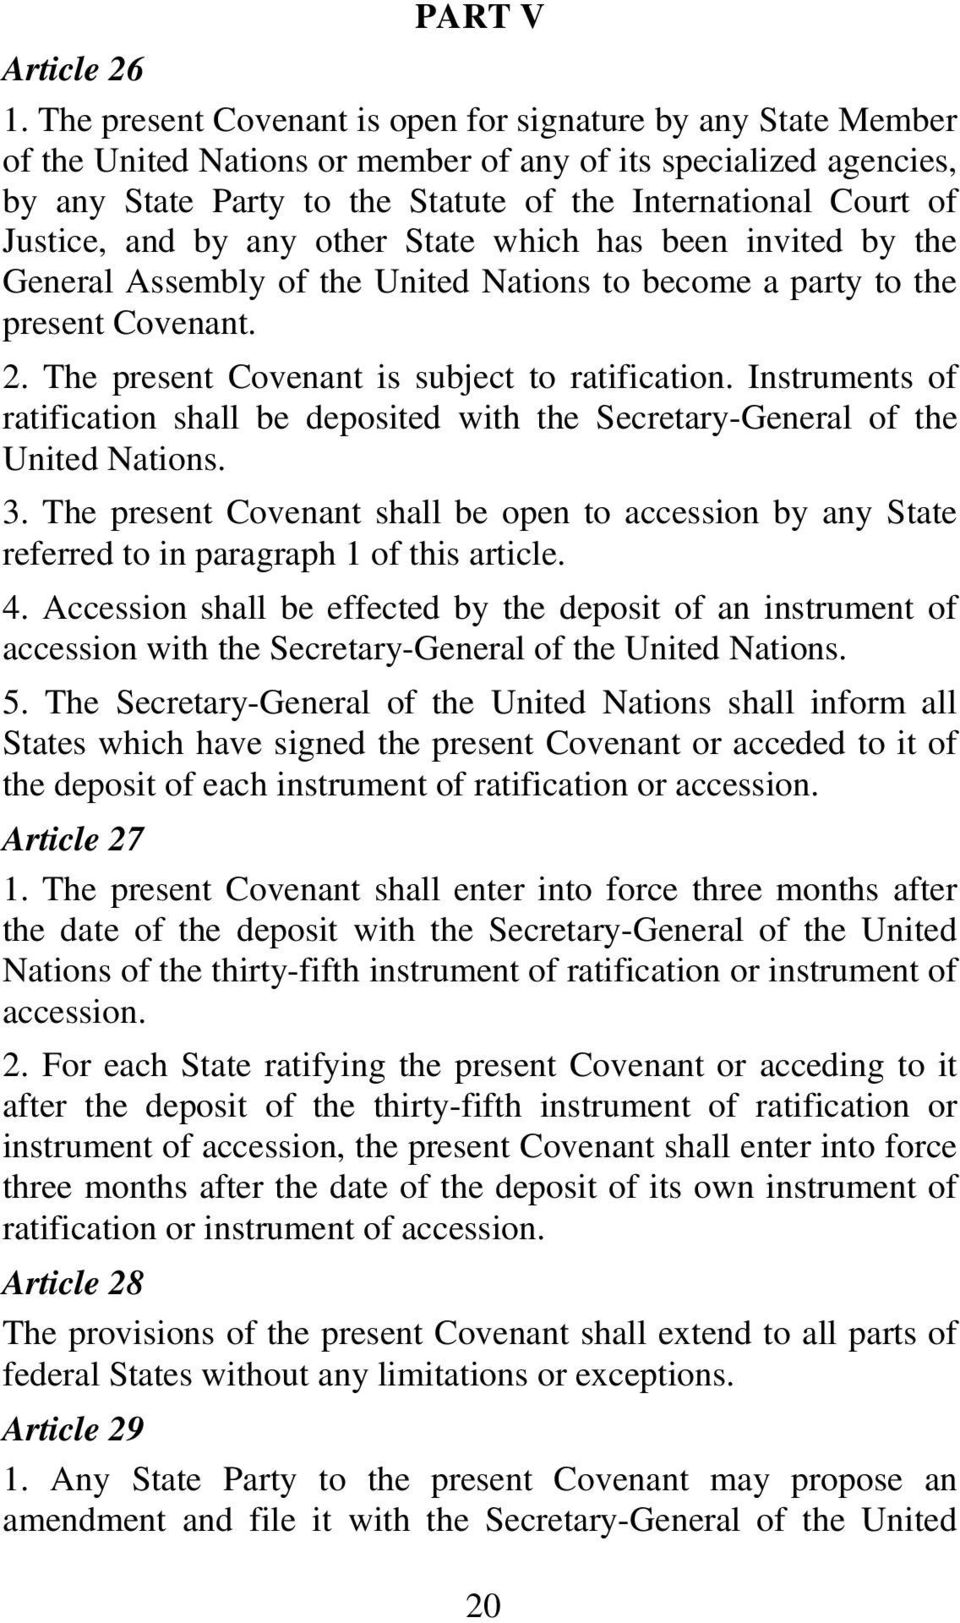 Justice, and by any other State which has been invited by the General Assembly of the United Nations to become a party to the present Covenant. 2. The present Covenant is subject to ratification.